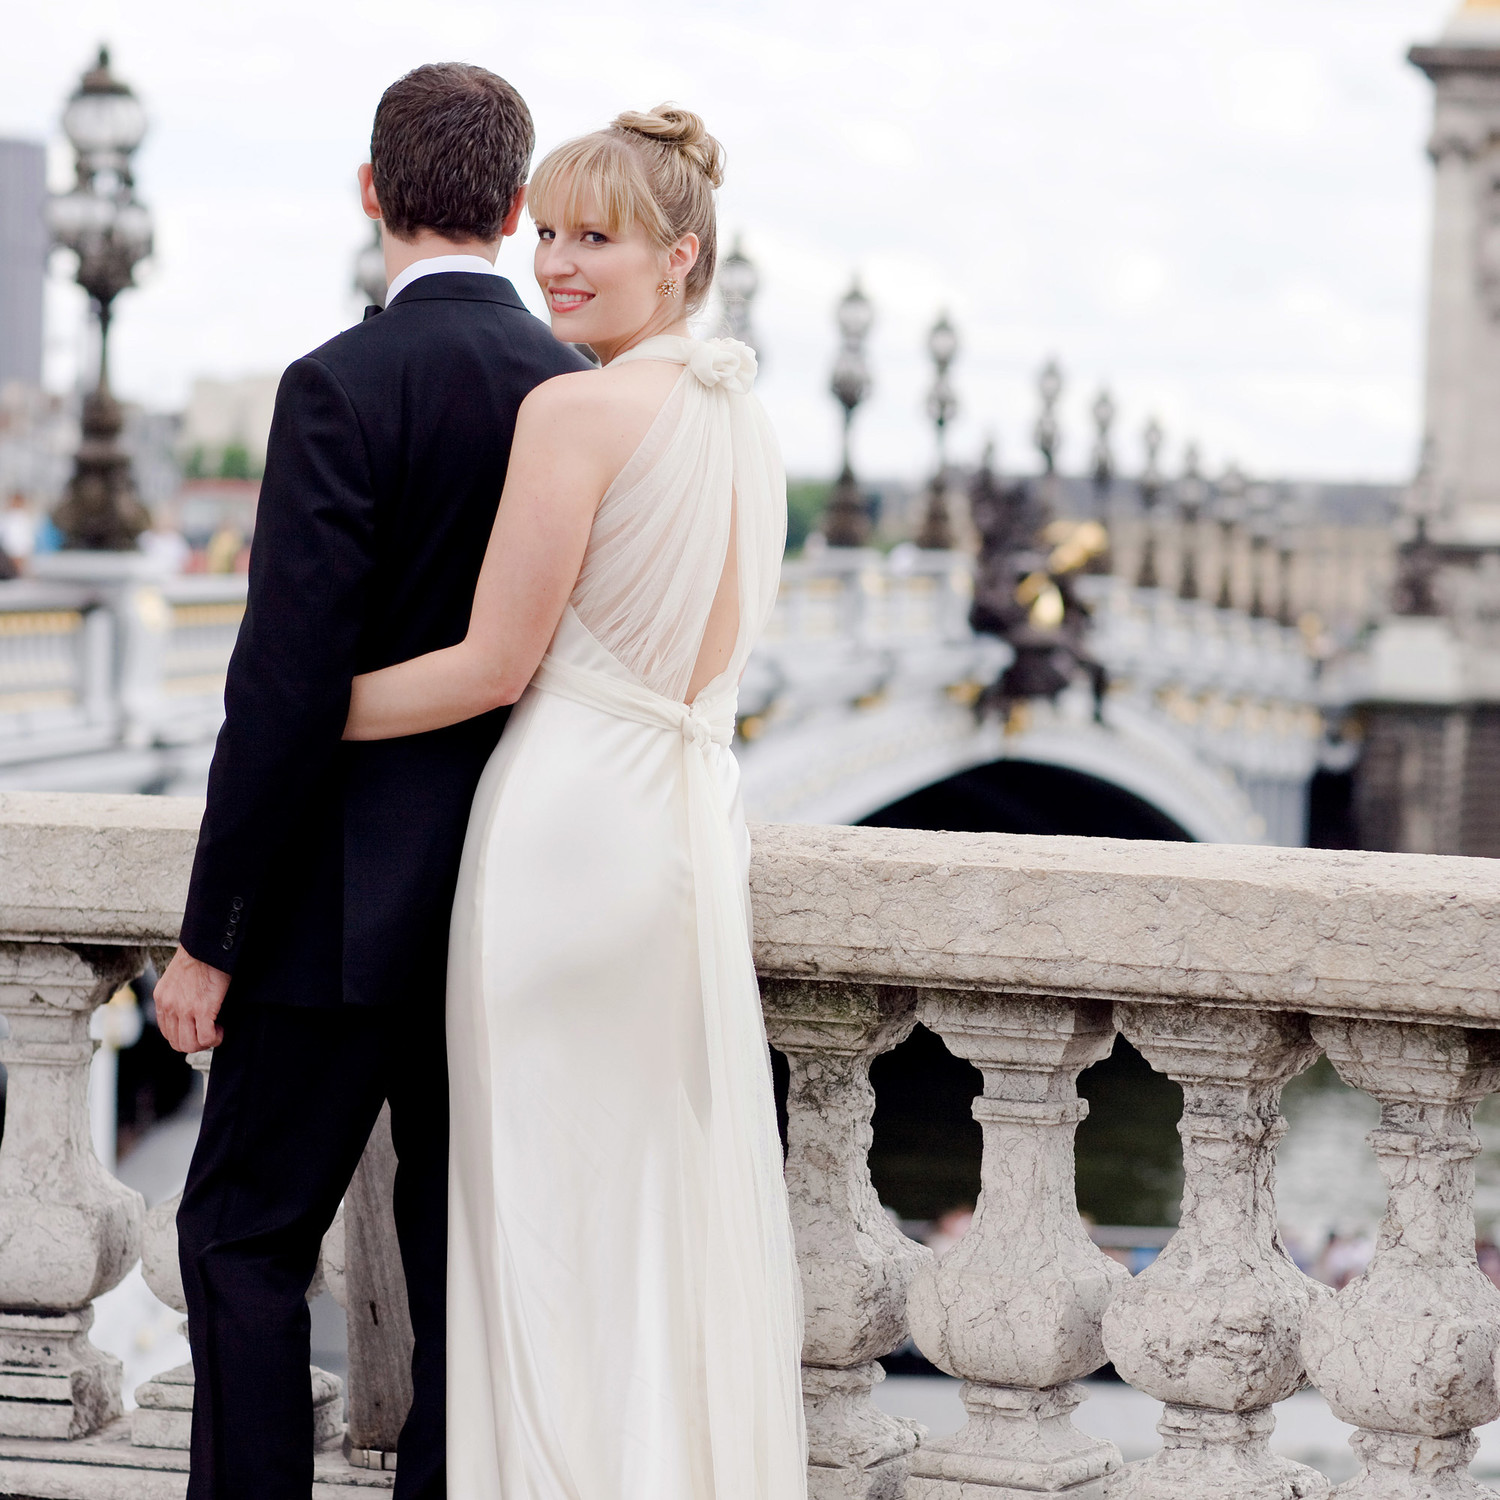 A Formal Black and White Destination Wedding in France